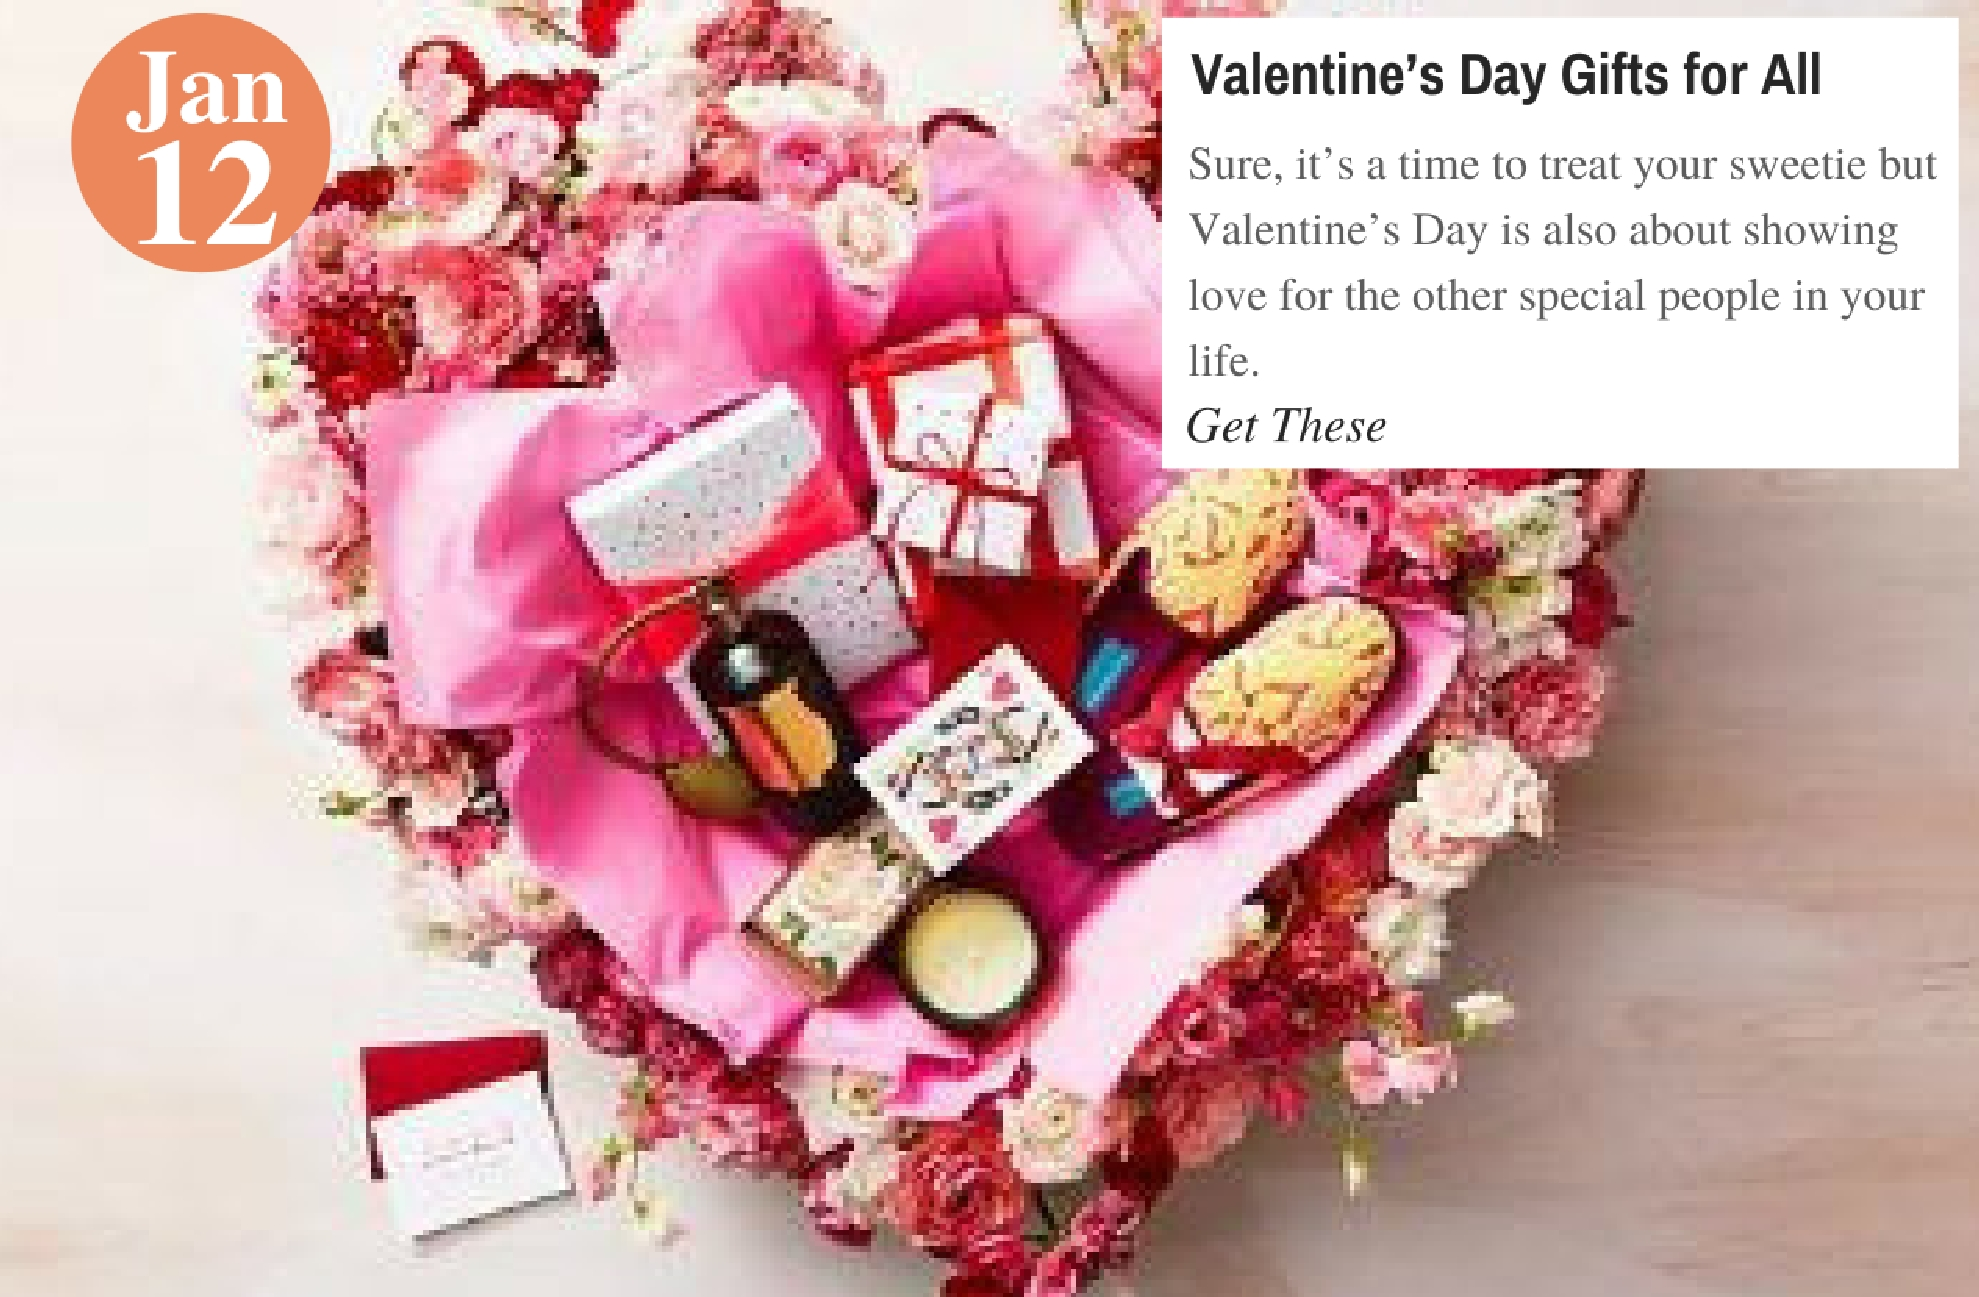 Valentine's Day Gifts for All